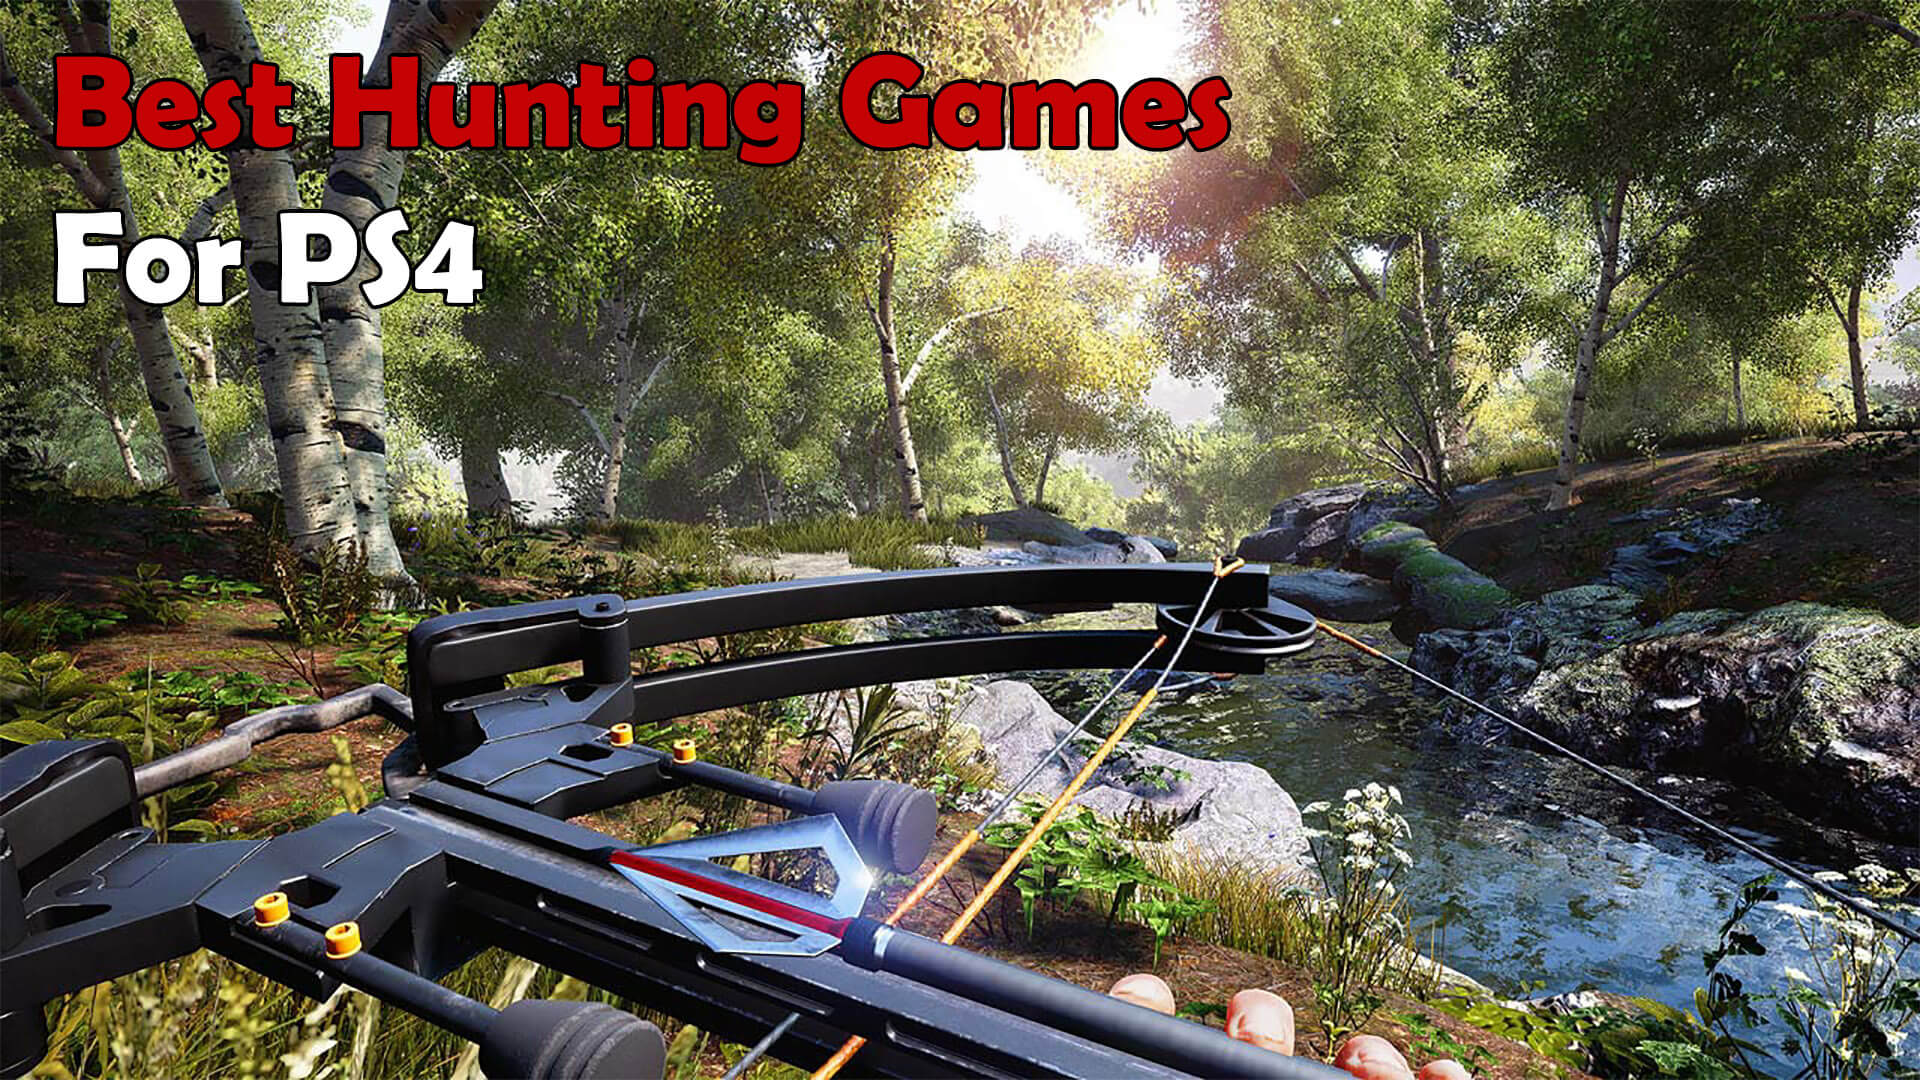 Best Hunting Game For PS4